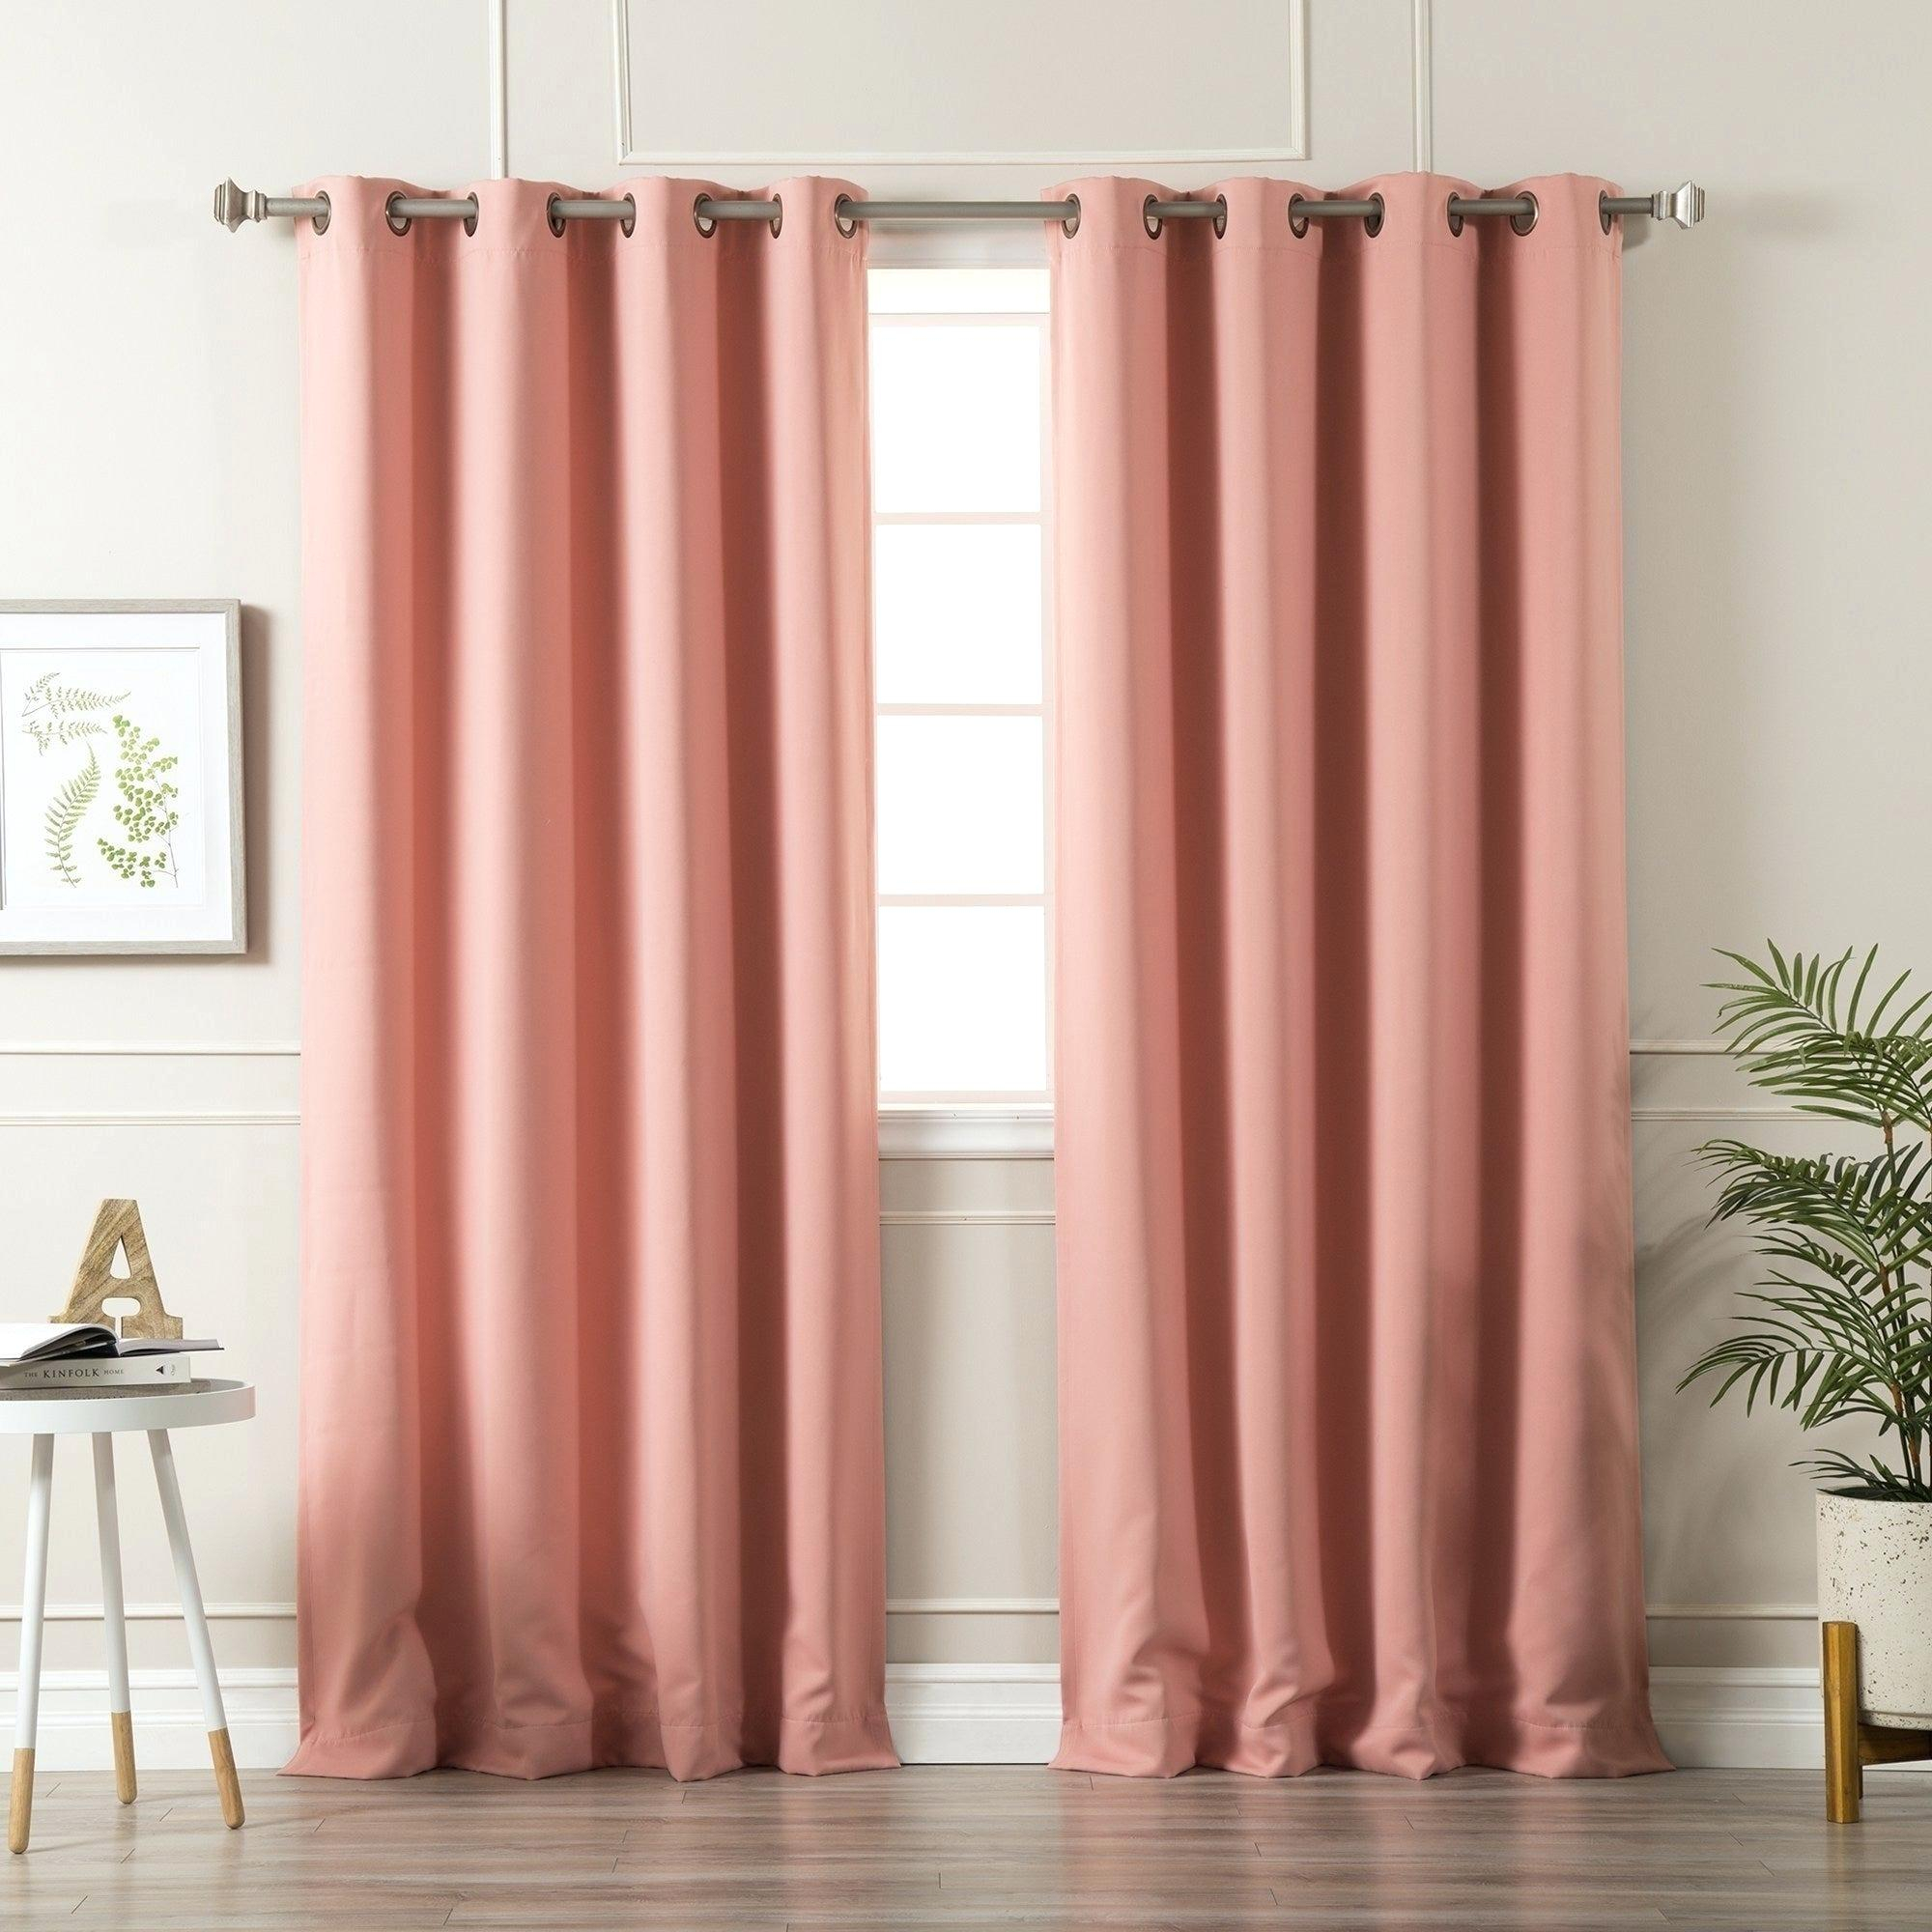 Cheap Grommet Blackout Curtains – Bluehorizonsinc Throughout Insulated Blackout Grommet Window Curtain Panel Pairs (View 9 of 20)